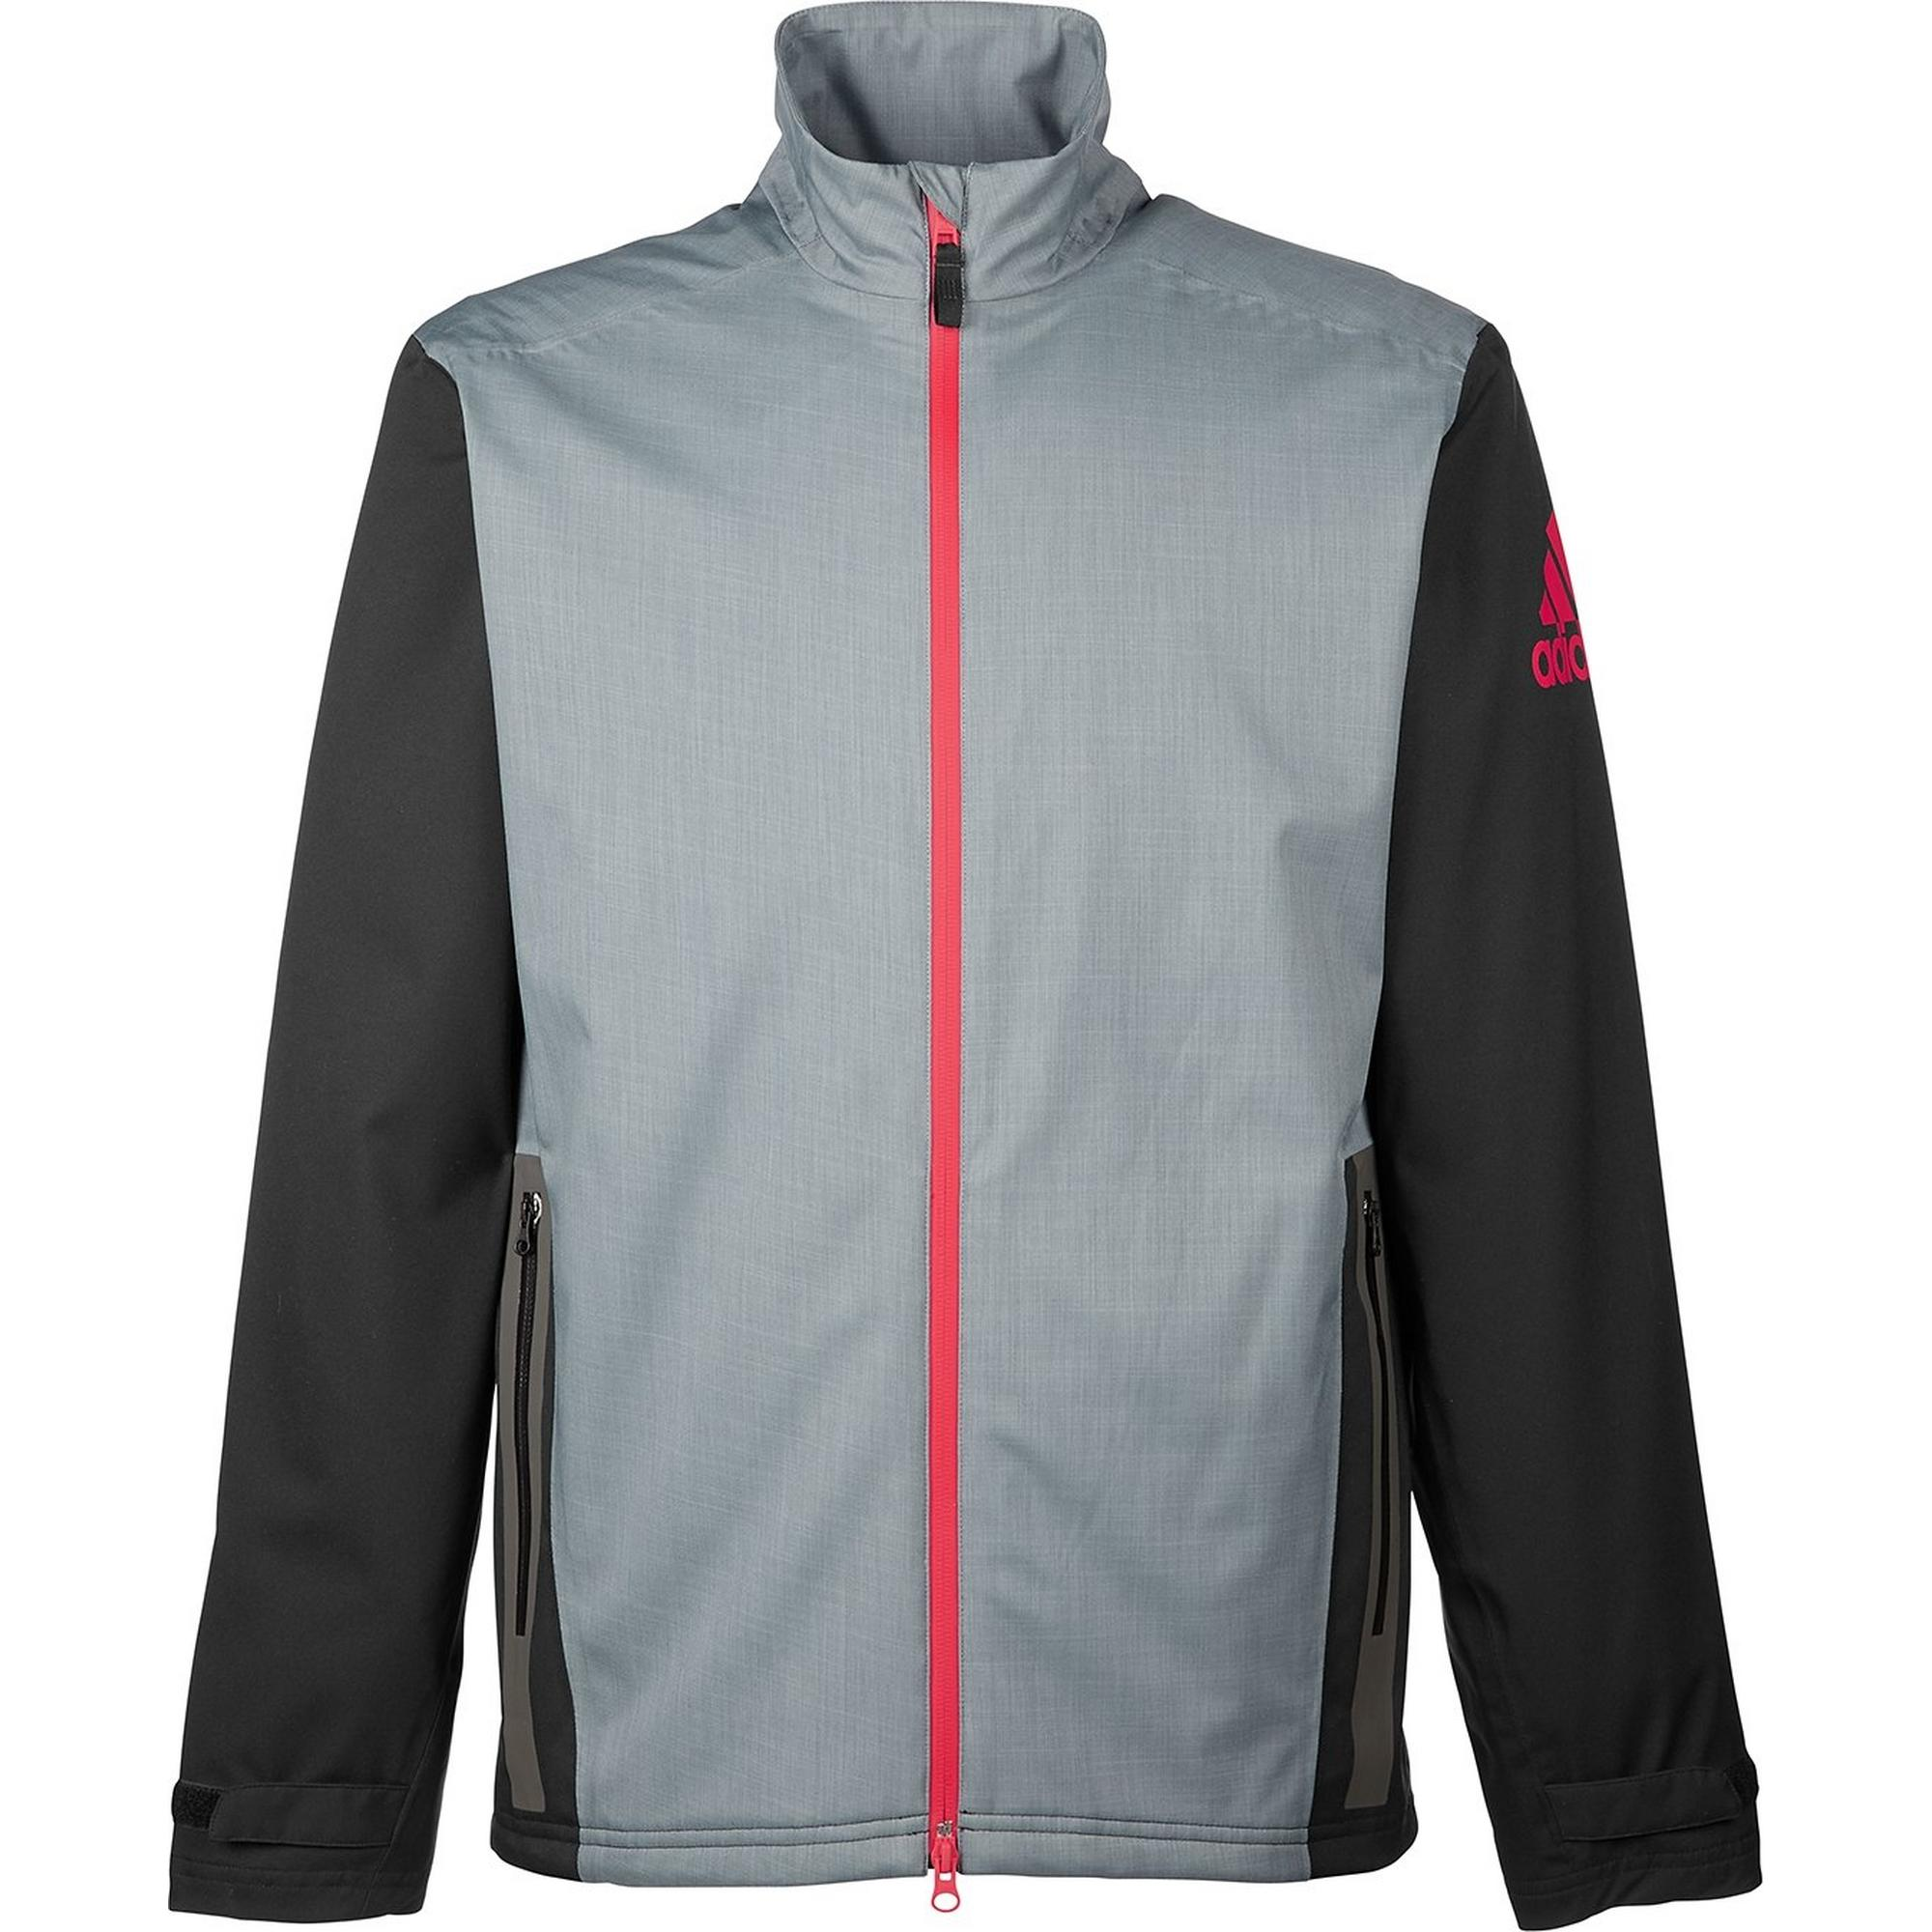 acb8c949d3 Men's Climaproof Heather Stretch Full Zip Jacket | ADIDAS | Golf Town  Limited